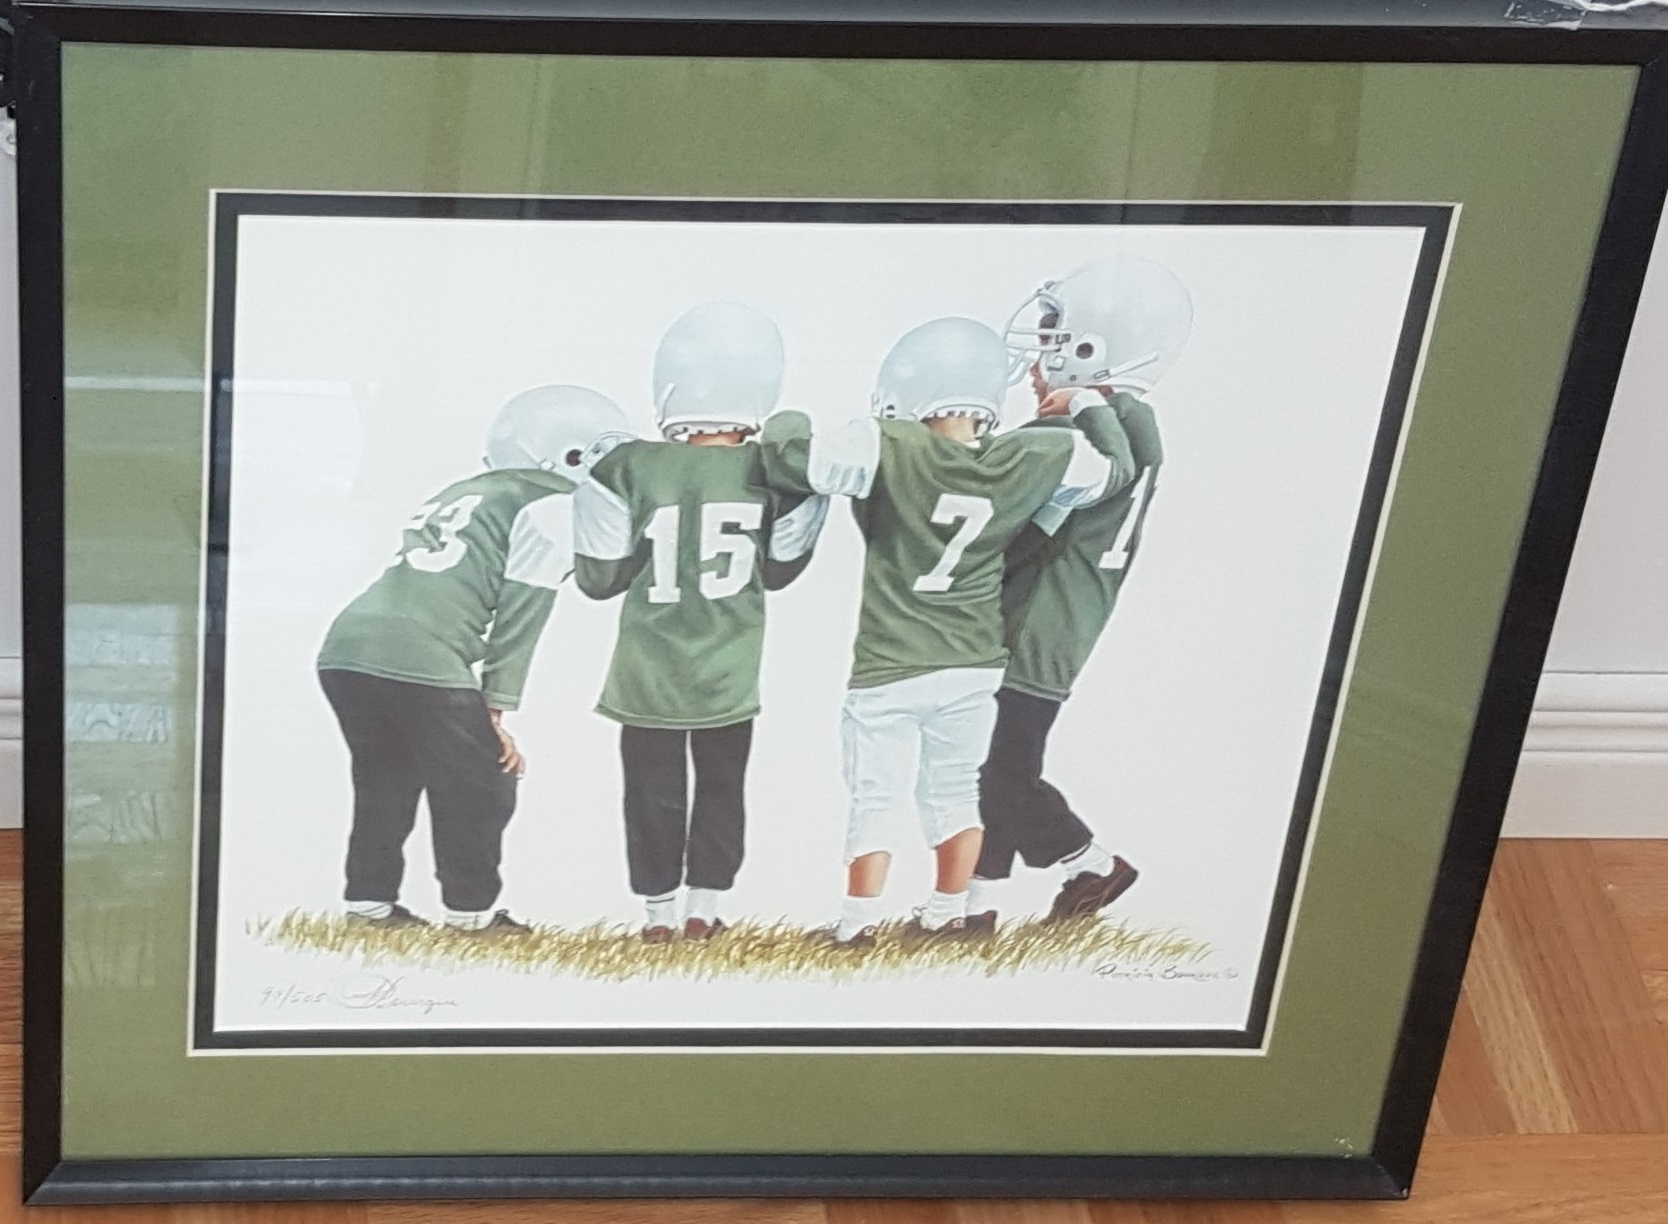 The Huddle by Patricia Bourque